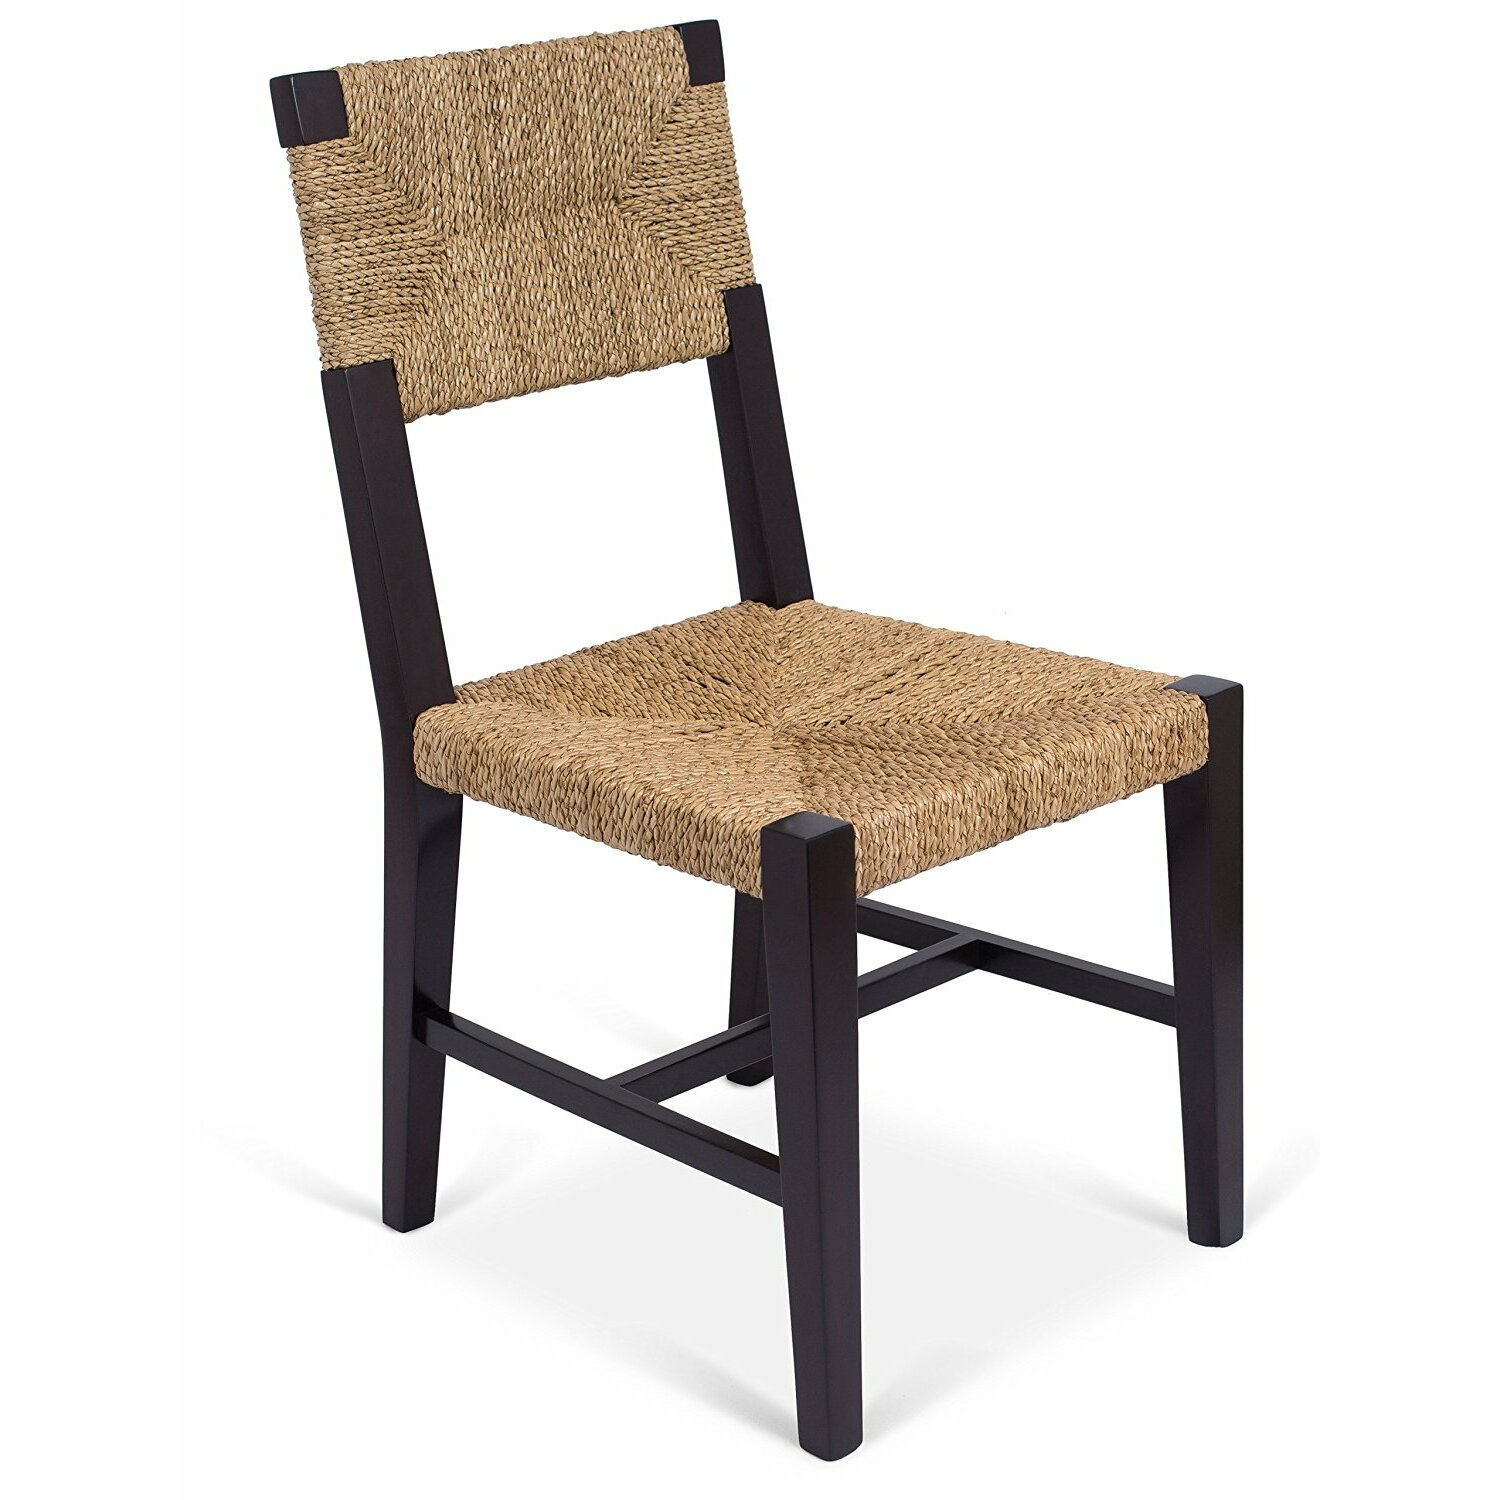 Solid Wood Dining Chairs: BirdRock Home Rush Weave Solid Wood Dining Chair